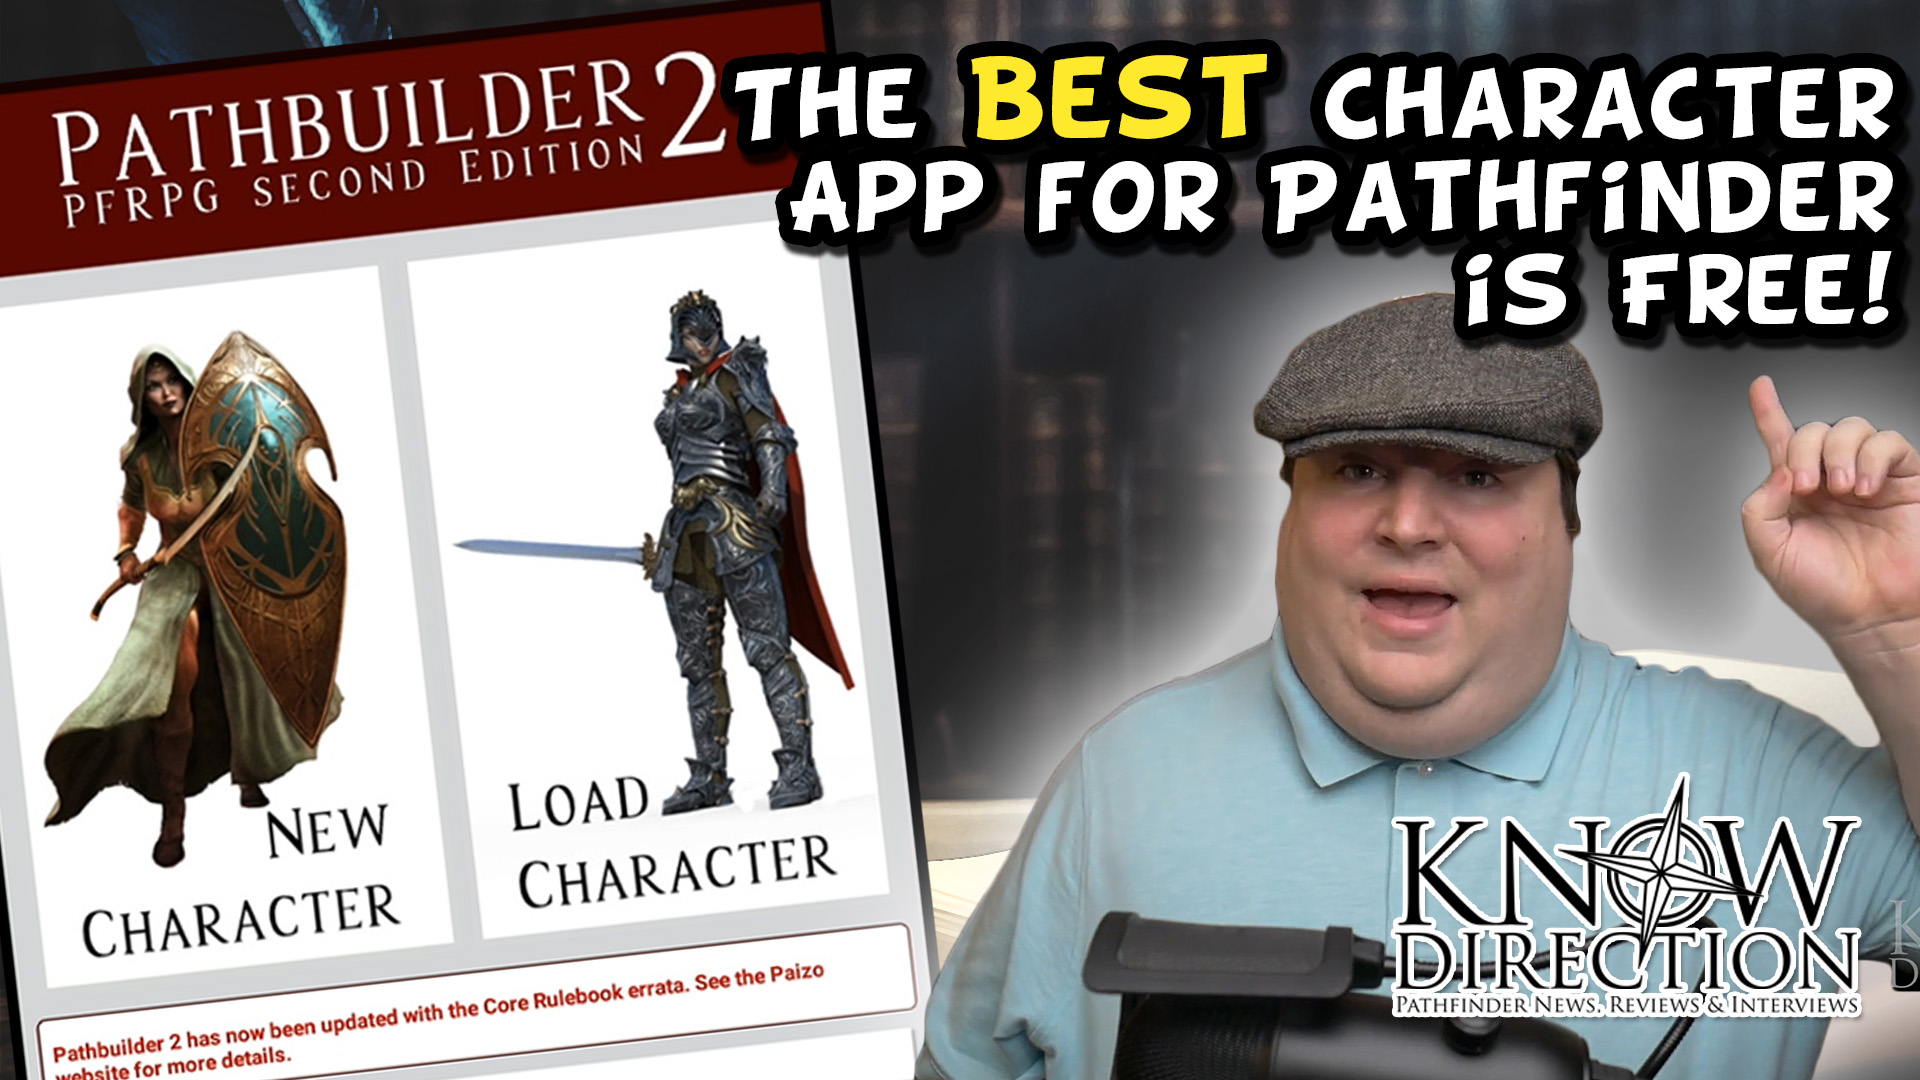 The Best App for Pathfinder is Free! - Pathbuilder 2e Review